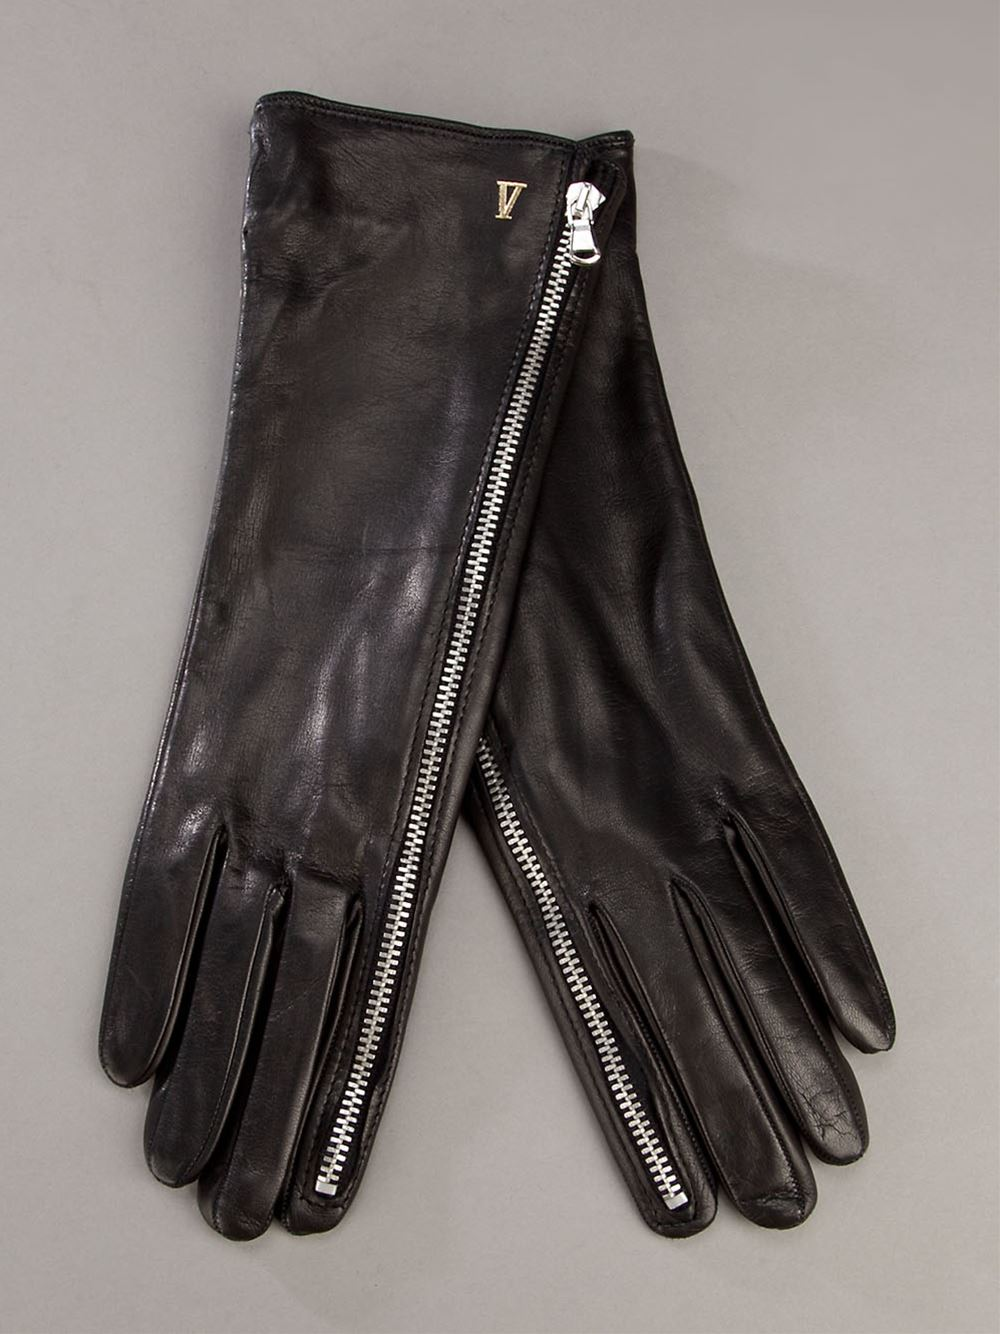 Mens leather gloves grey - 2015 Fashion Black And Brown Long Leather Gloves For Men In Gloves Mittens From Men S Clothing Accessories On Aliexpress Com Alibaba Group